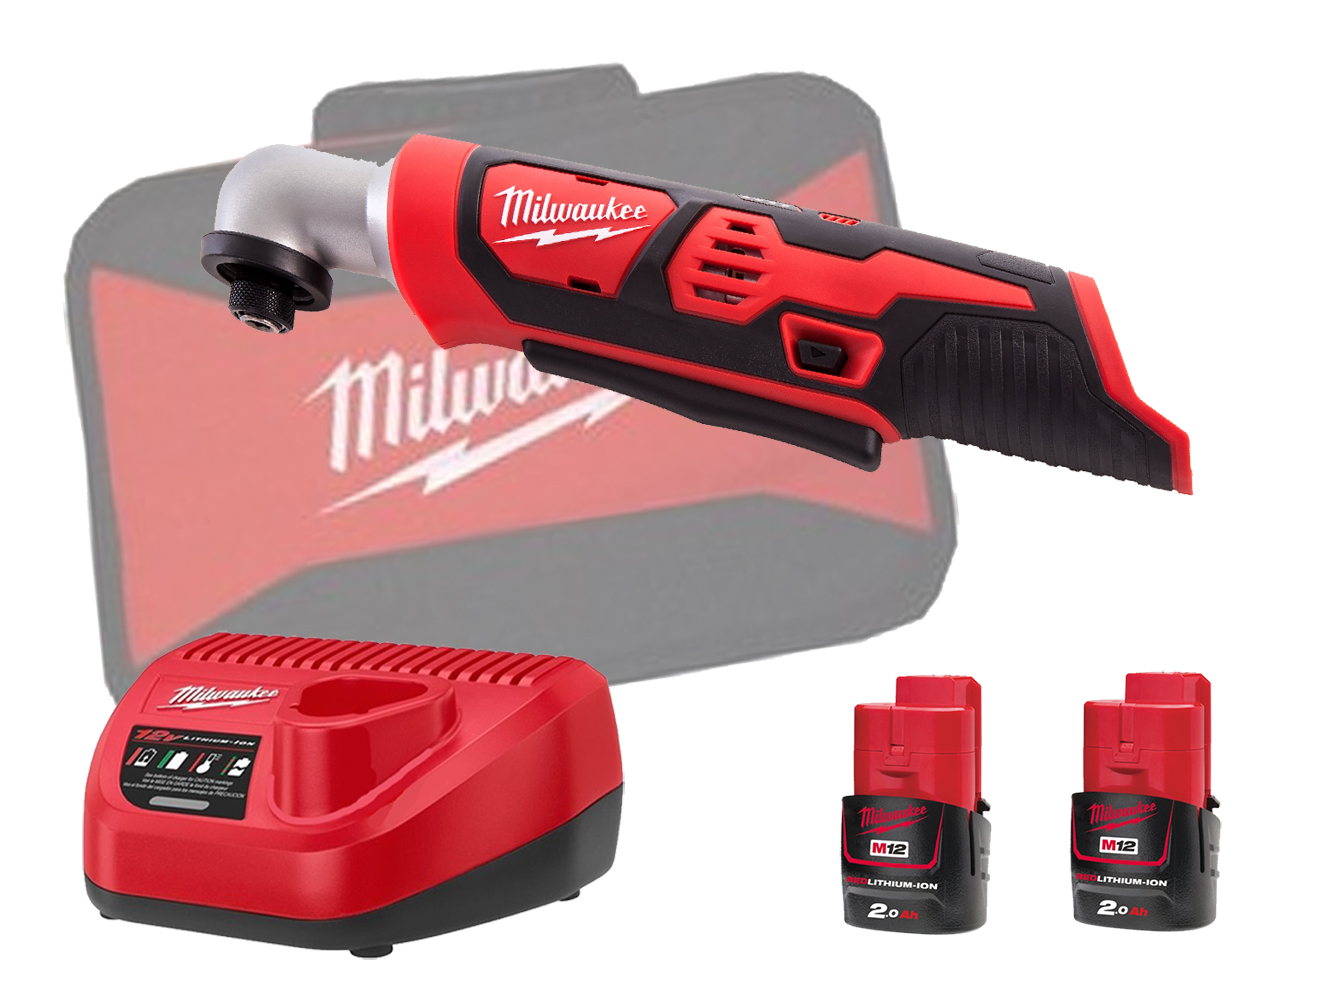 MILWAUKEE 12V BRUSHED RIGHT ANGLE IMPACT - M12BRAID - 2.0AH PACK